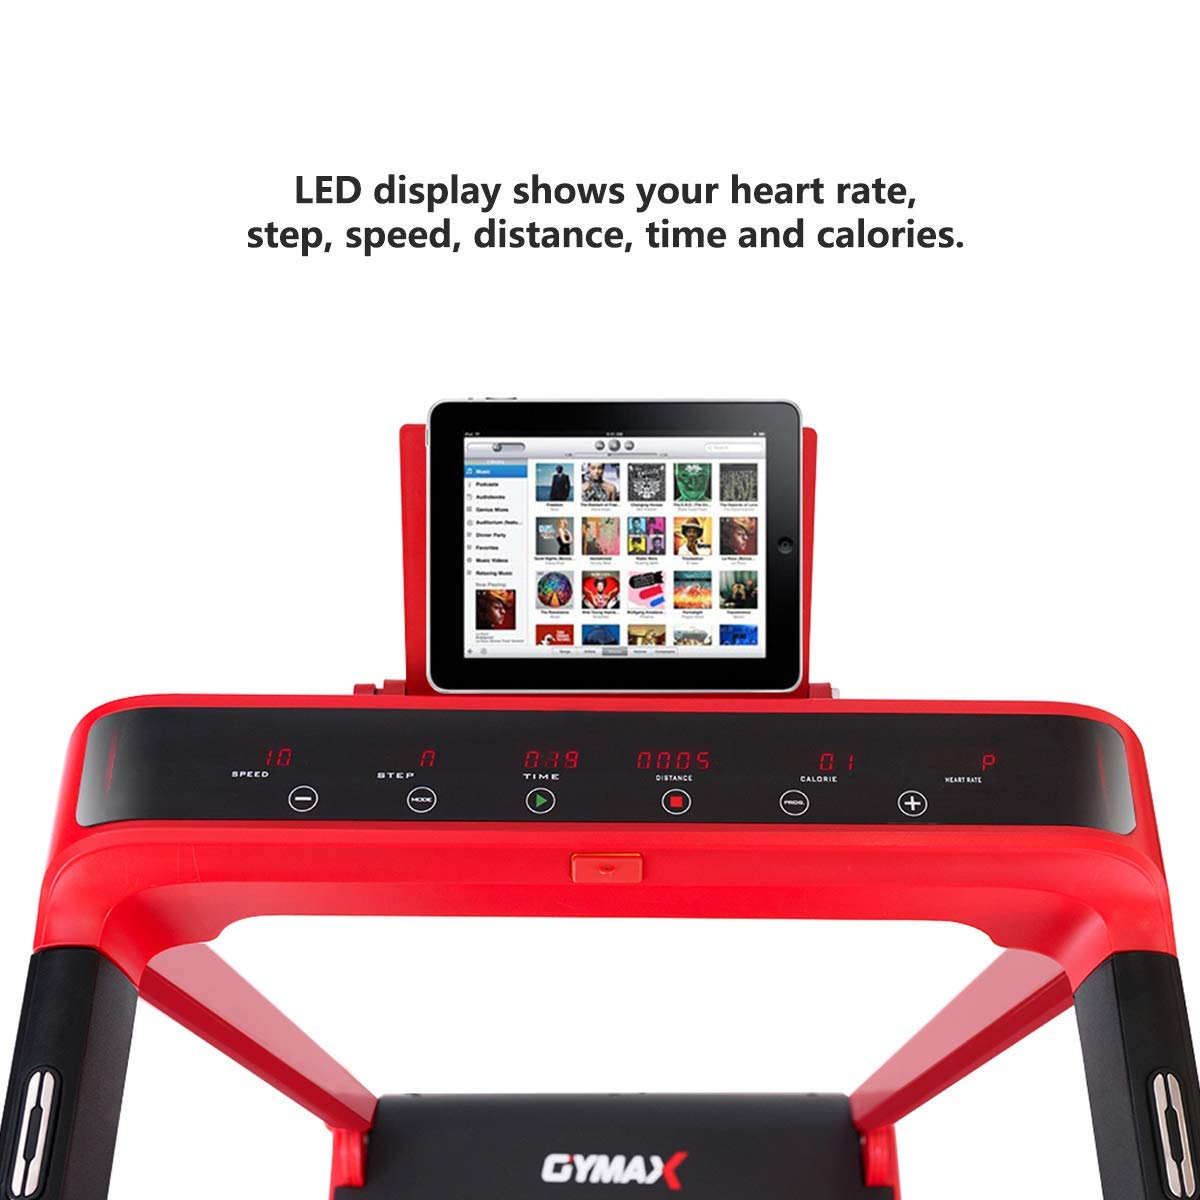 Goplus 2.25 HP Folding Treadmill Electric Cardio Fitness Jogging Running Machine Portable Motorized Power Slim Treadmill with Sports App and LED Display (Red) by Goplus (Image #8)